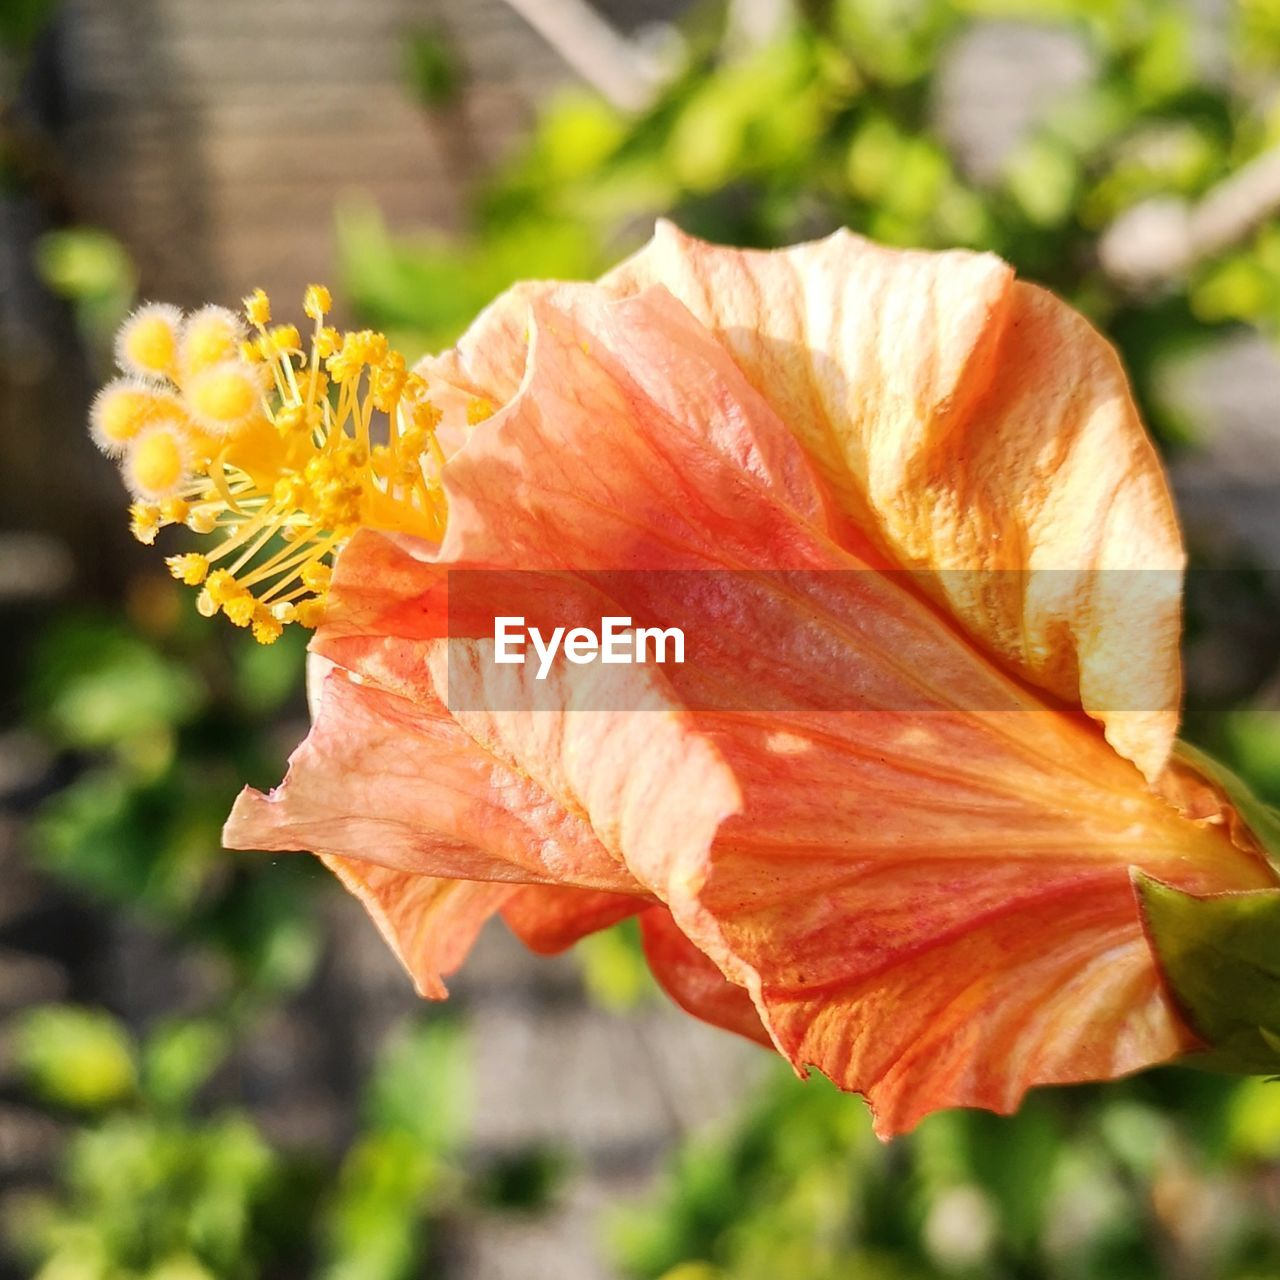 beauty in nature, flowering plant, flower, vulnerability, fragility, plant, freshness, close-up, petal, focus on foreground, growth, nature, inflorescence, flower head, day, orange color, sunlight, no people, outdoors, botany, pollen